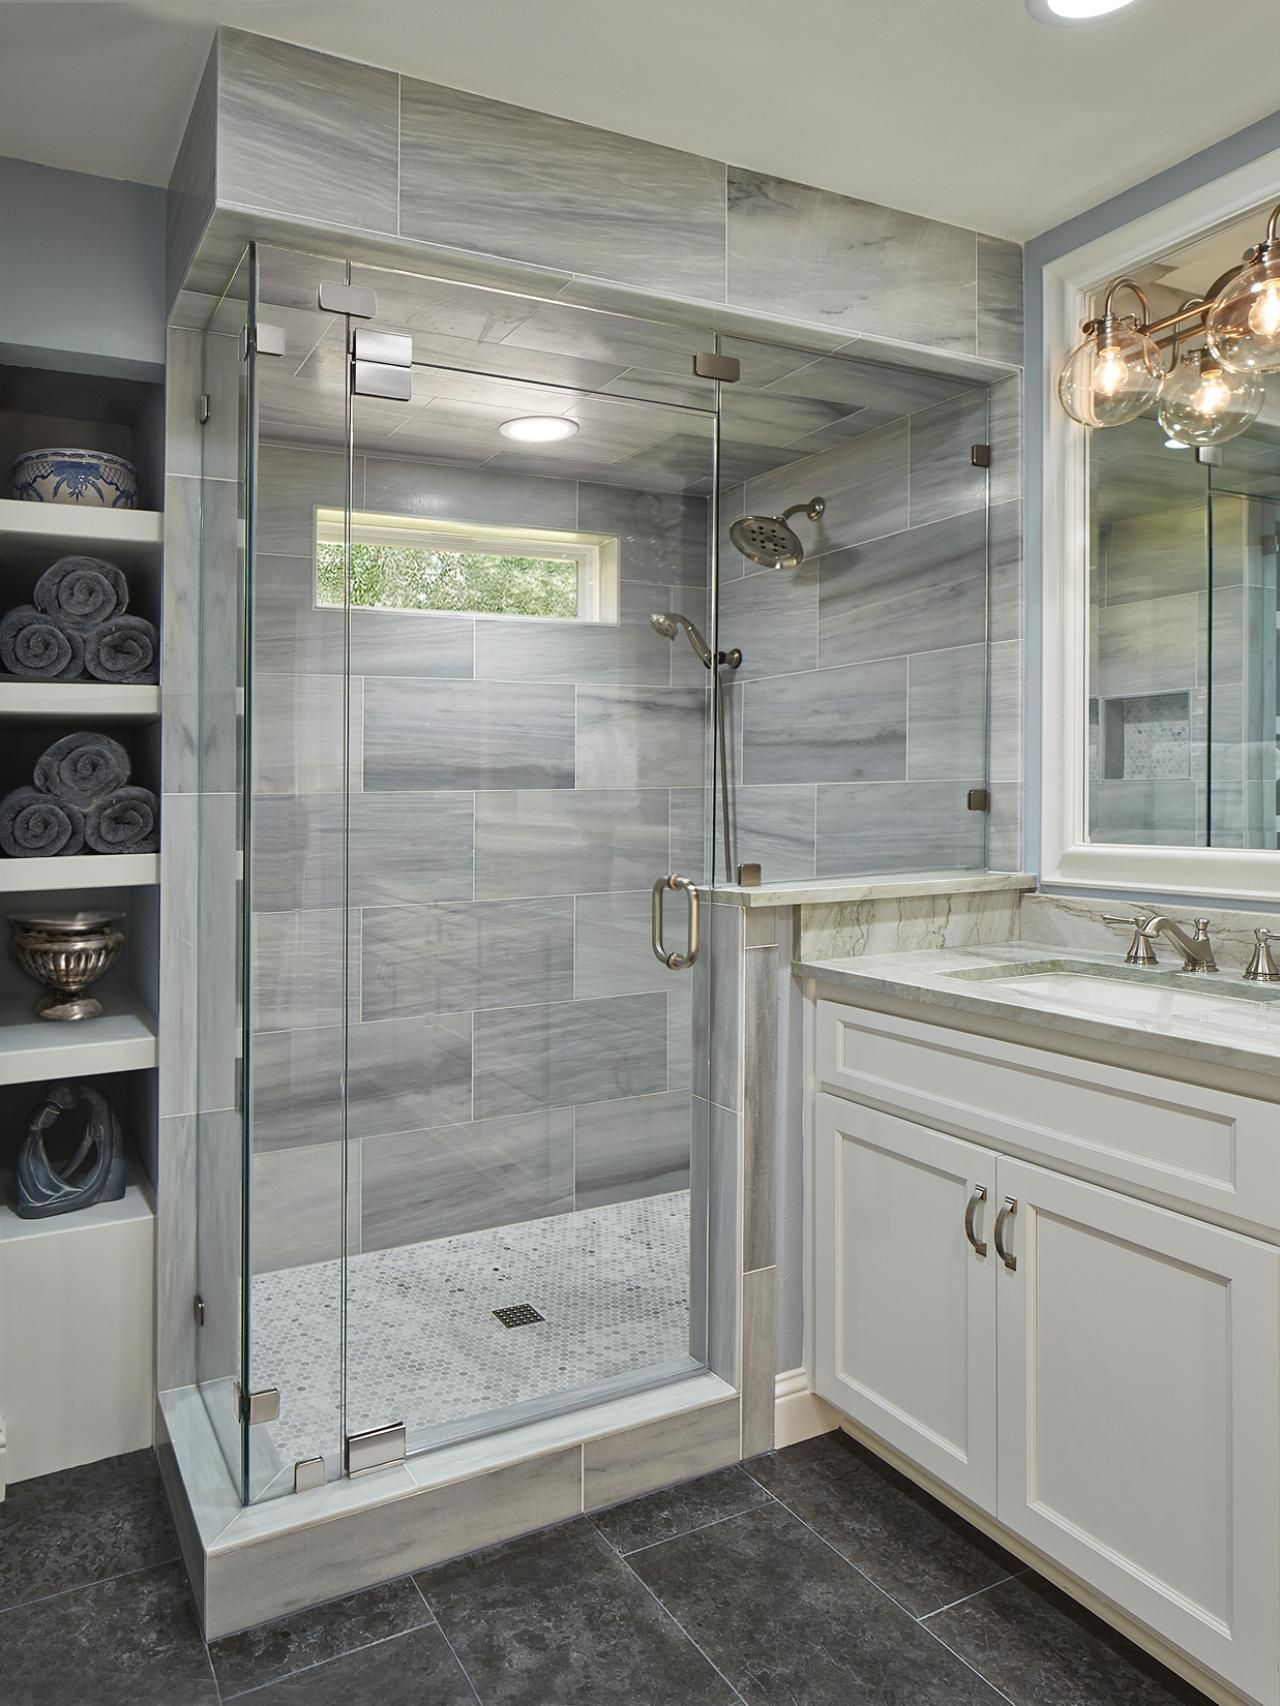 Bathroom With Glass And Marble Shower Gray Limestone Floors And Quartzite And Wo Small Master Bathroom Small Bathroom Remodel Designs Bathroom Remodel Master